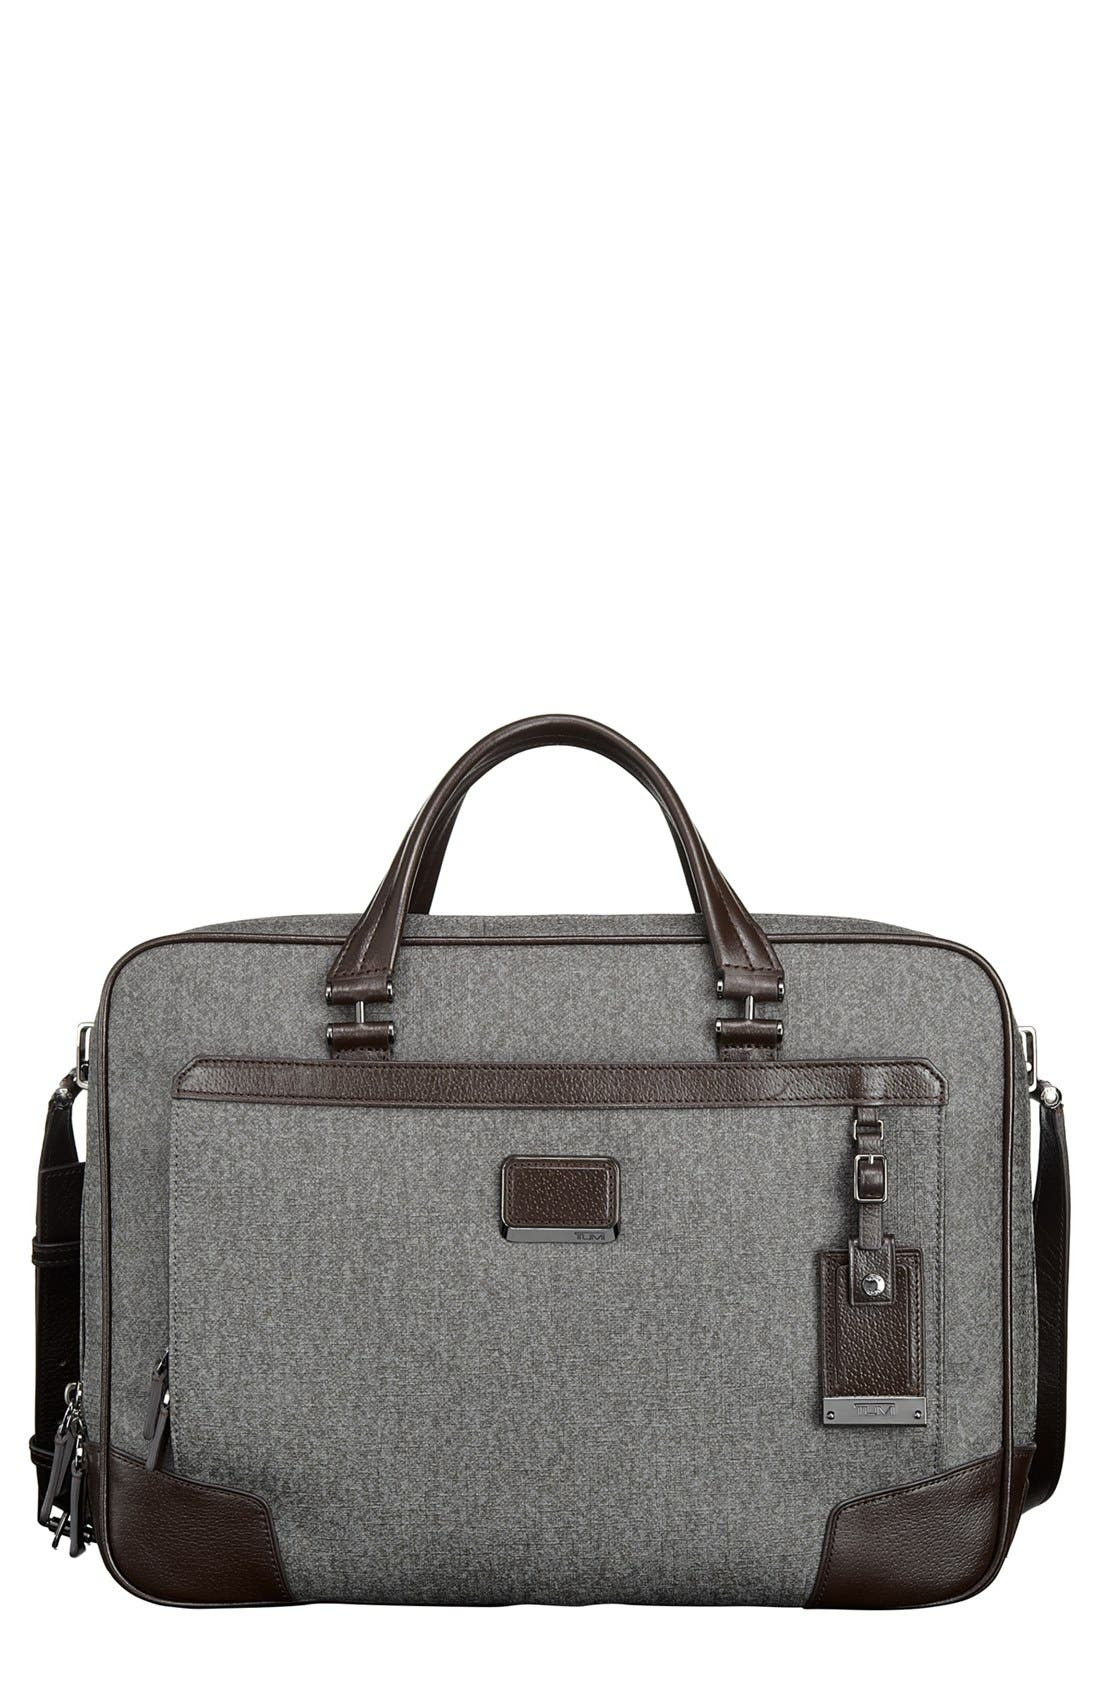 'Astor Ansonia' Zip Top Coated Canvas Laptop Briefcase,                             Main thumbnail 1, color,                             068